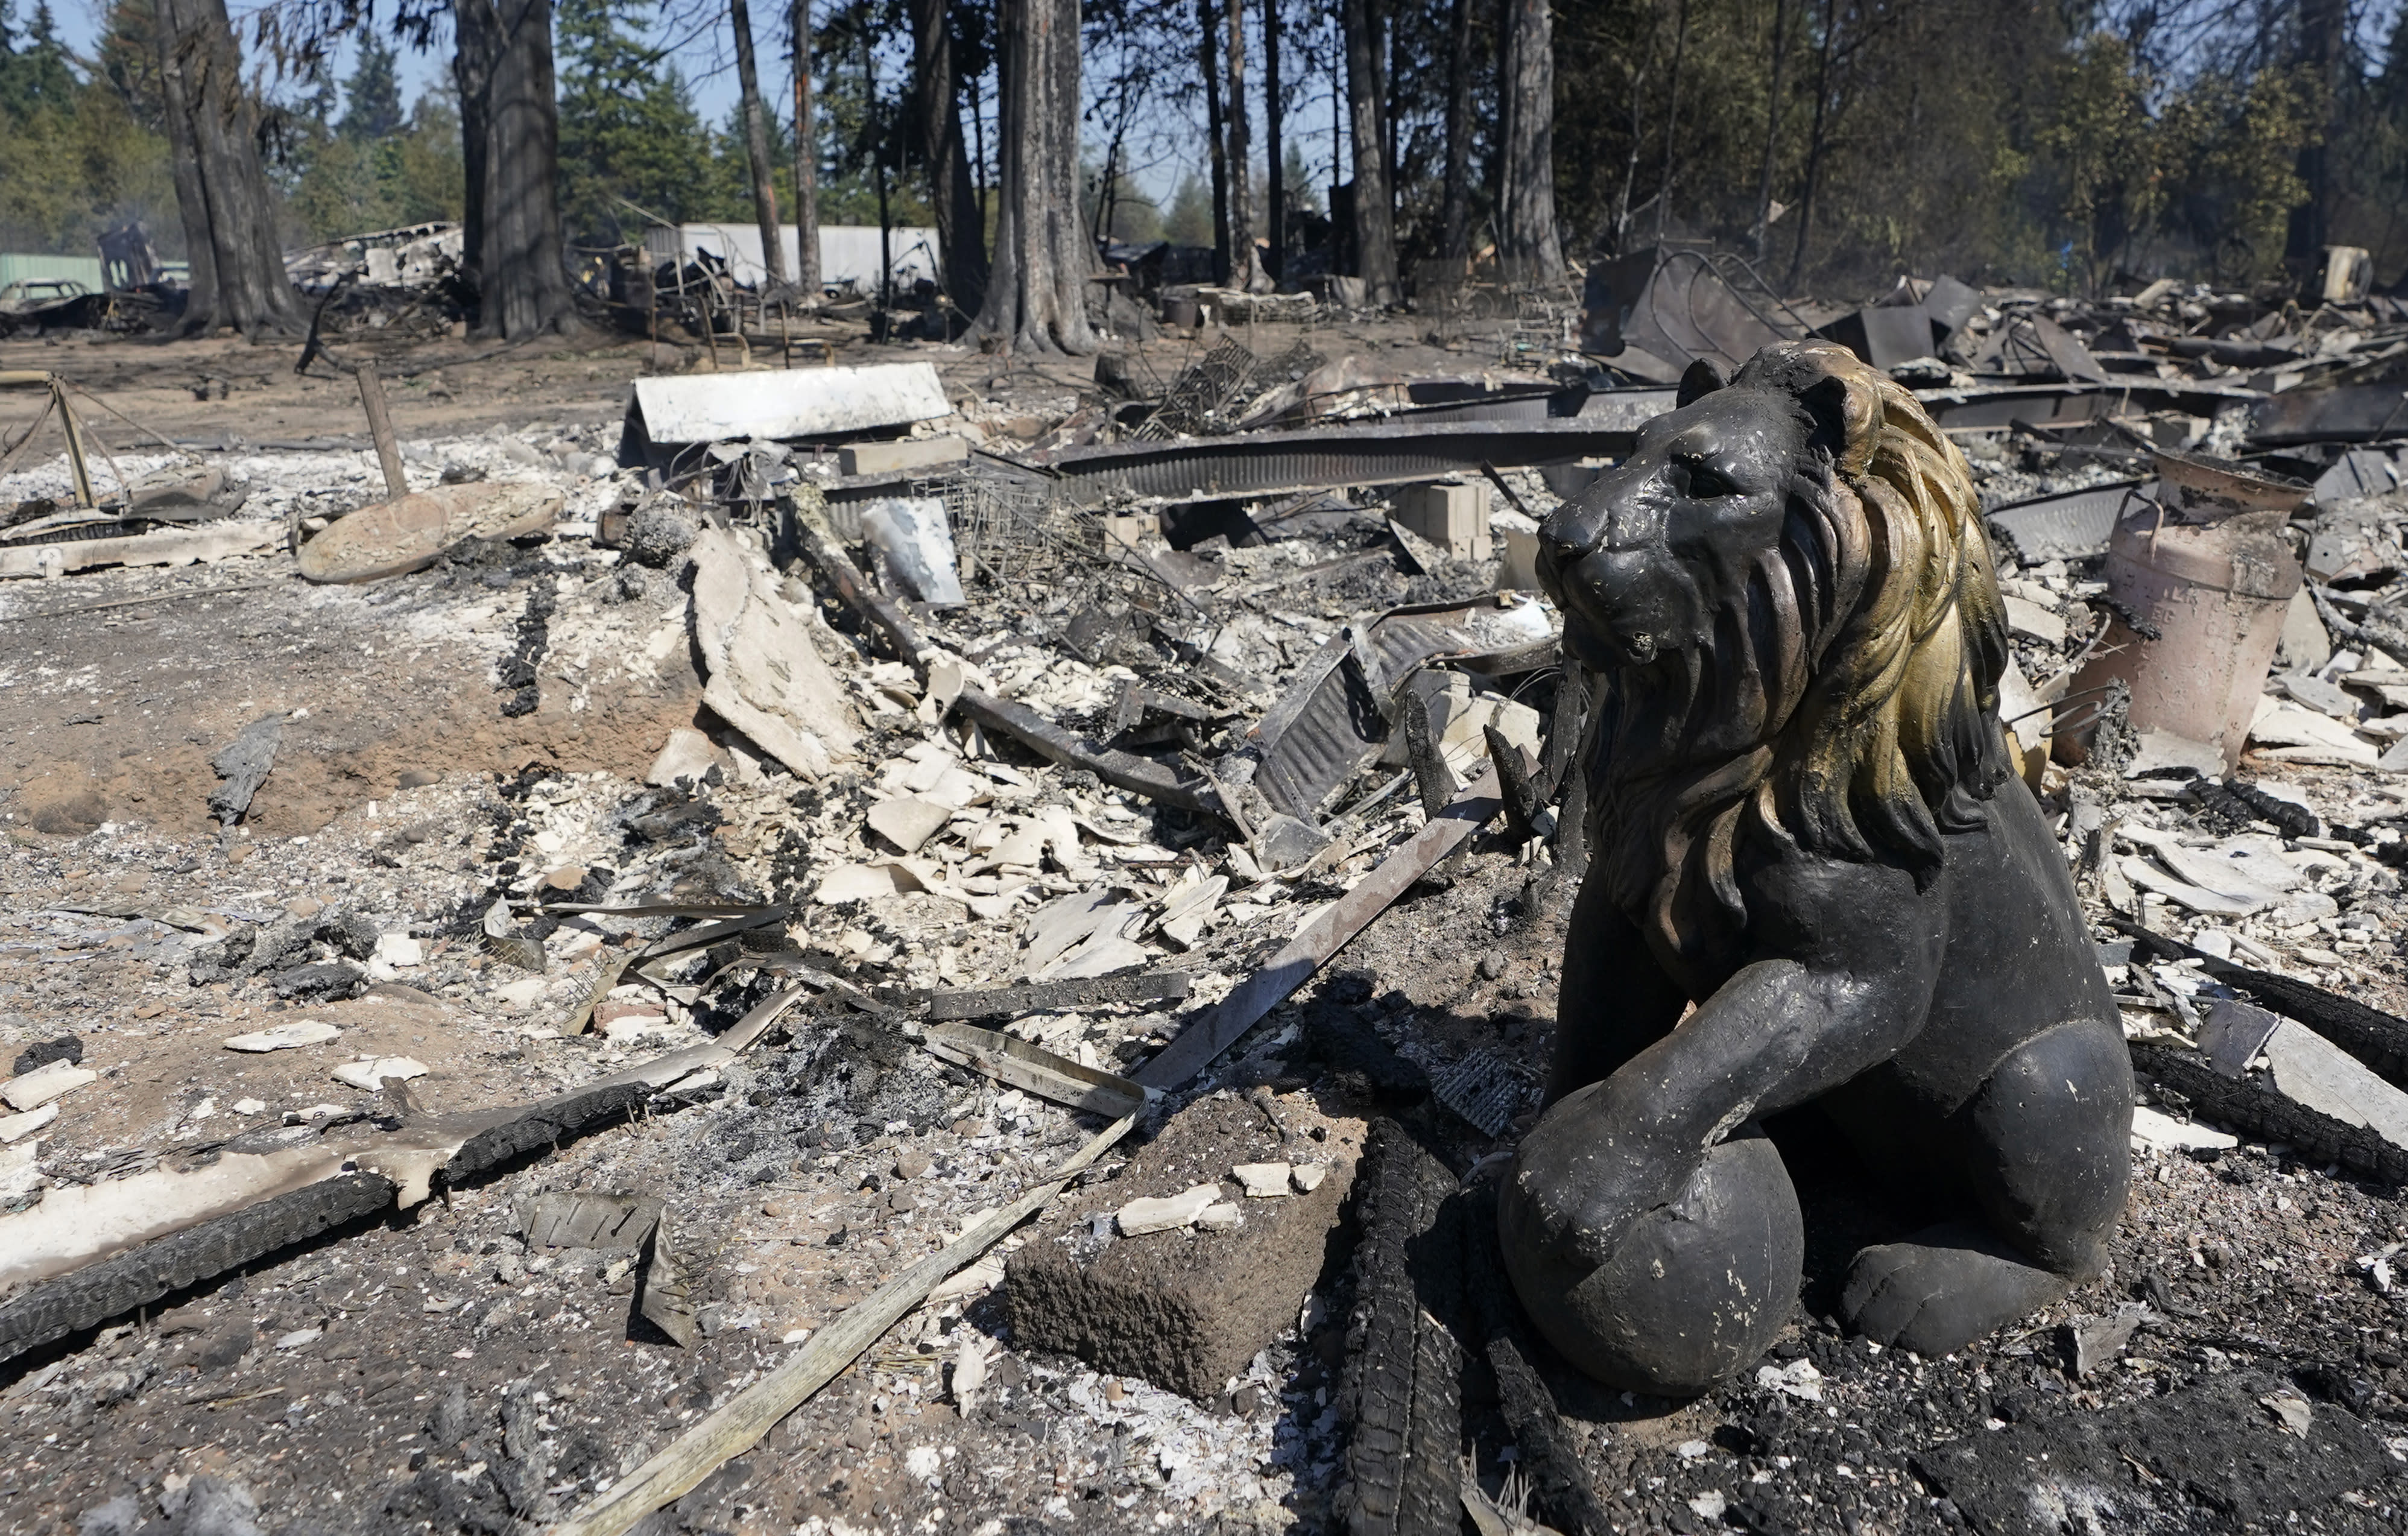 A decorate lion sculpture is shown charred by fire, Tuesday, Sept. 8, 2020, after a wildfire destroyed homes and outbuildings in Graham, Wash., overnight south of Seattle. (AP Photo/Ted S. Warren)